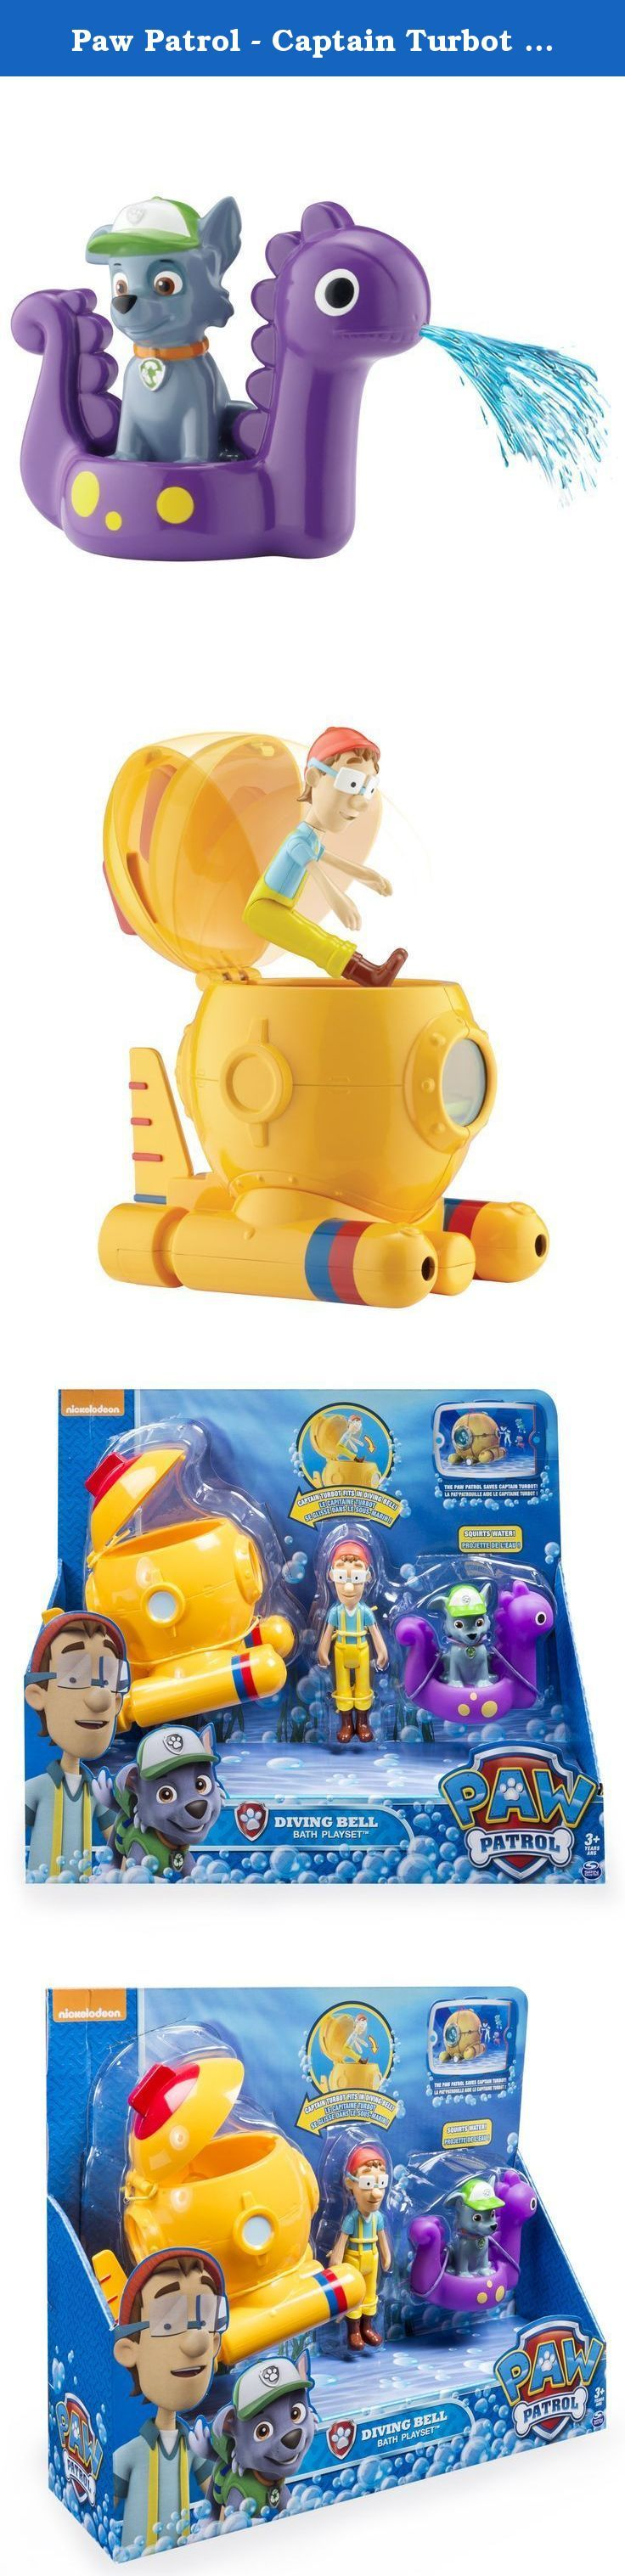 Paw Patrol - Captain Turbot Bath Playset. The Paw Patrol makes bath time more fun with the Captain Turbot Bath Playset! Recreate the underwater rescue mission where the Paw Patrol saved Captain Turbot with the included diving bell, Captain Turbot and Rocky figures, and bath squirter. The diving bell has real water pouring action, and the bath squirter fills with water and squirts it for extra fun. Save the day with Rocky and the Captain Turbot Bath Playset from Paw Patrol!.